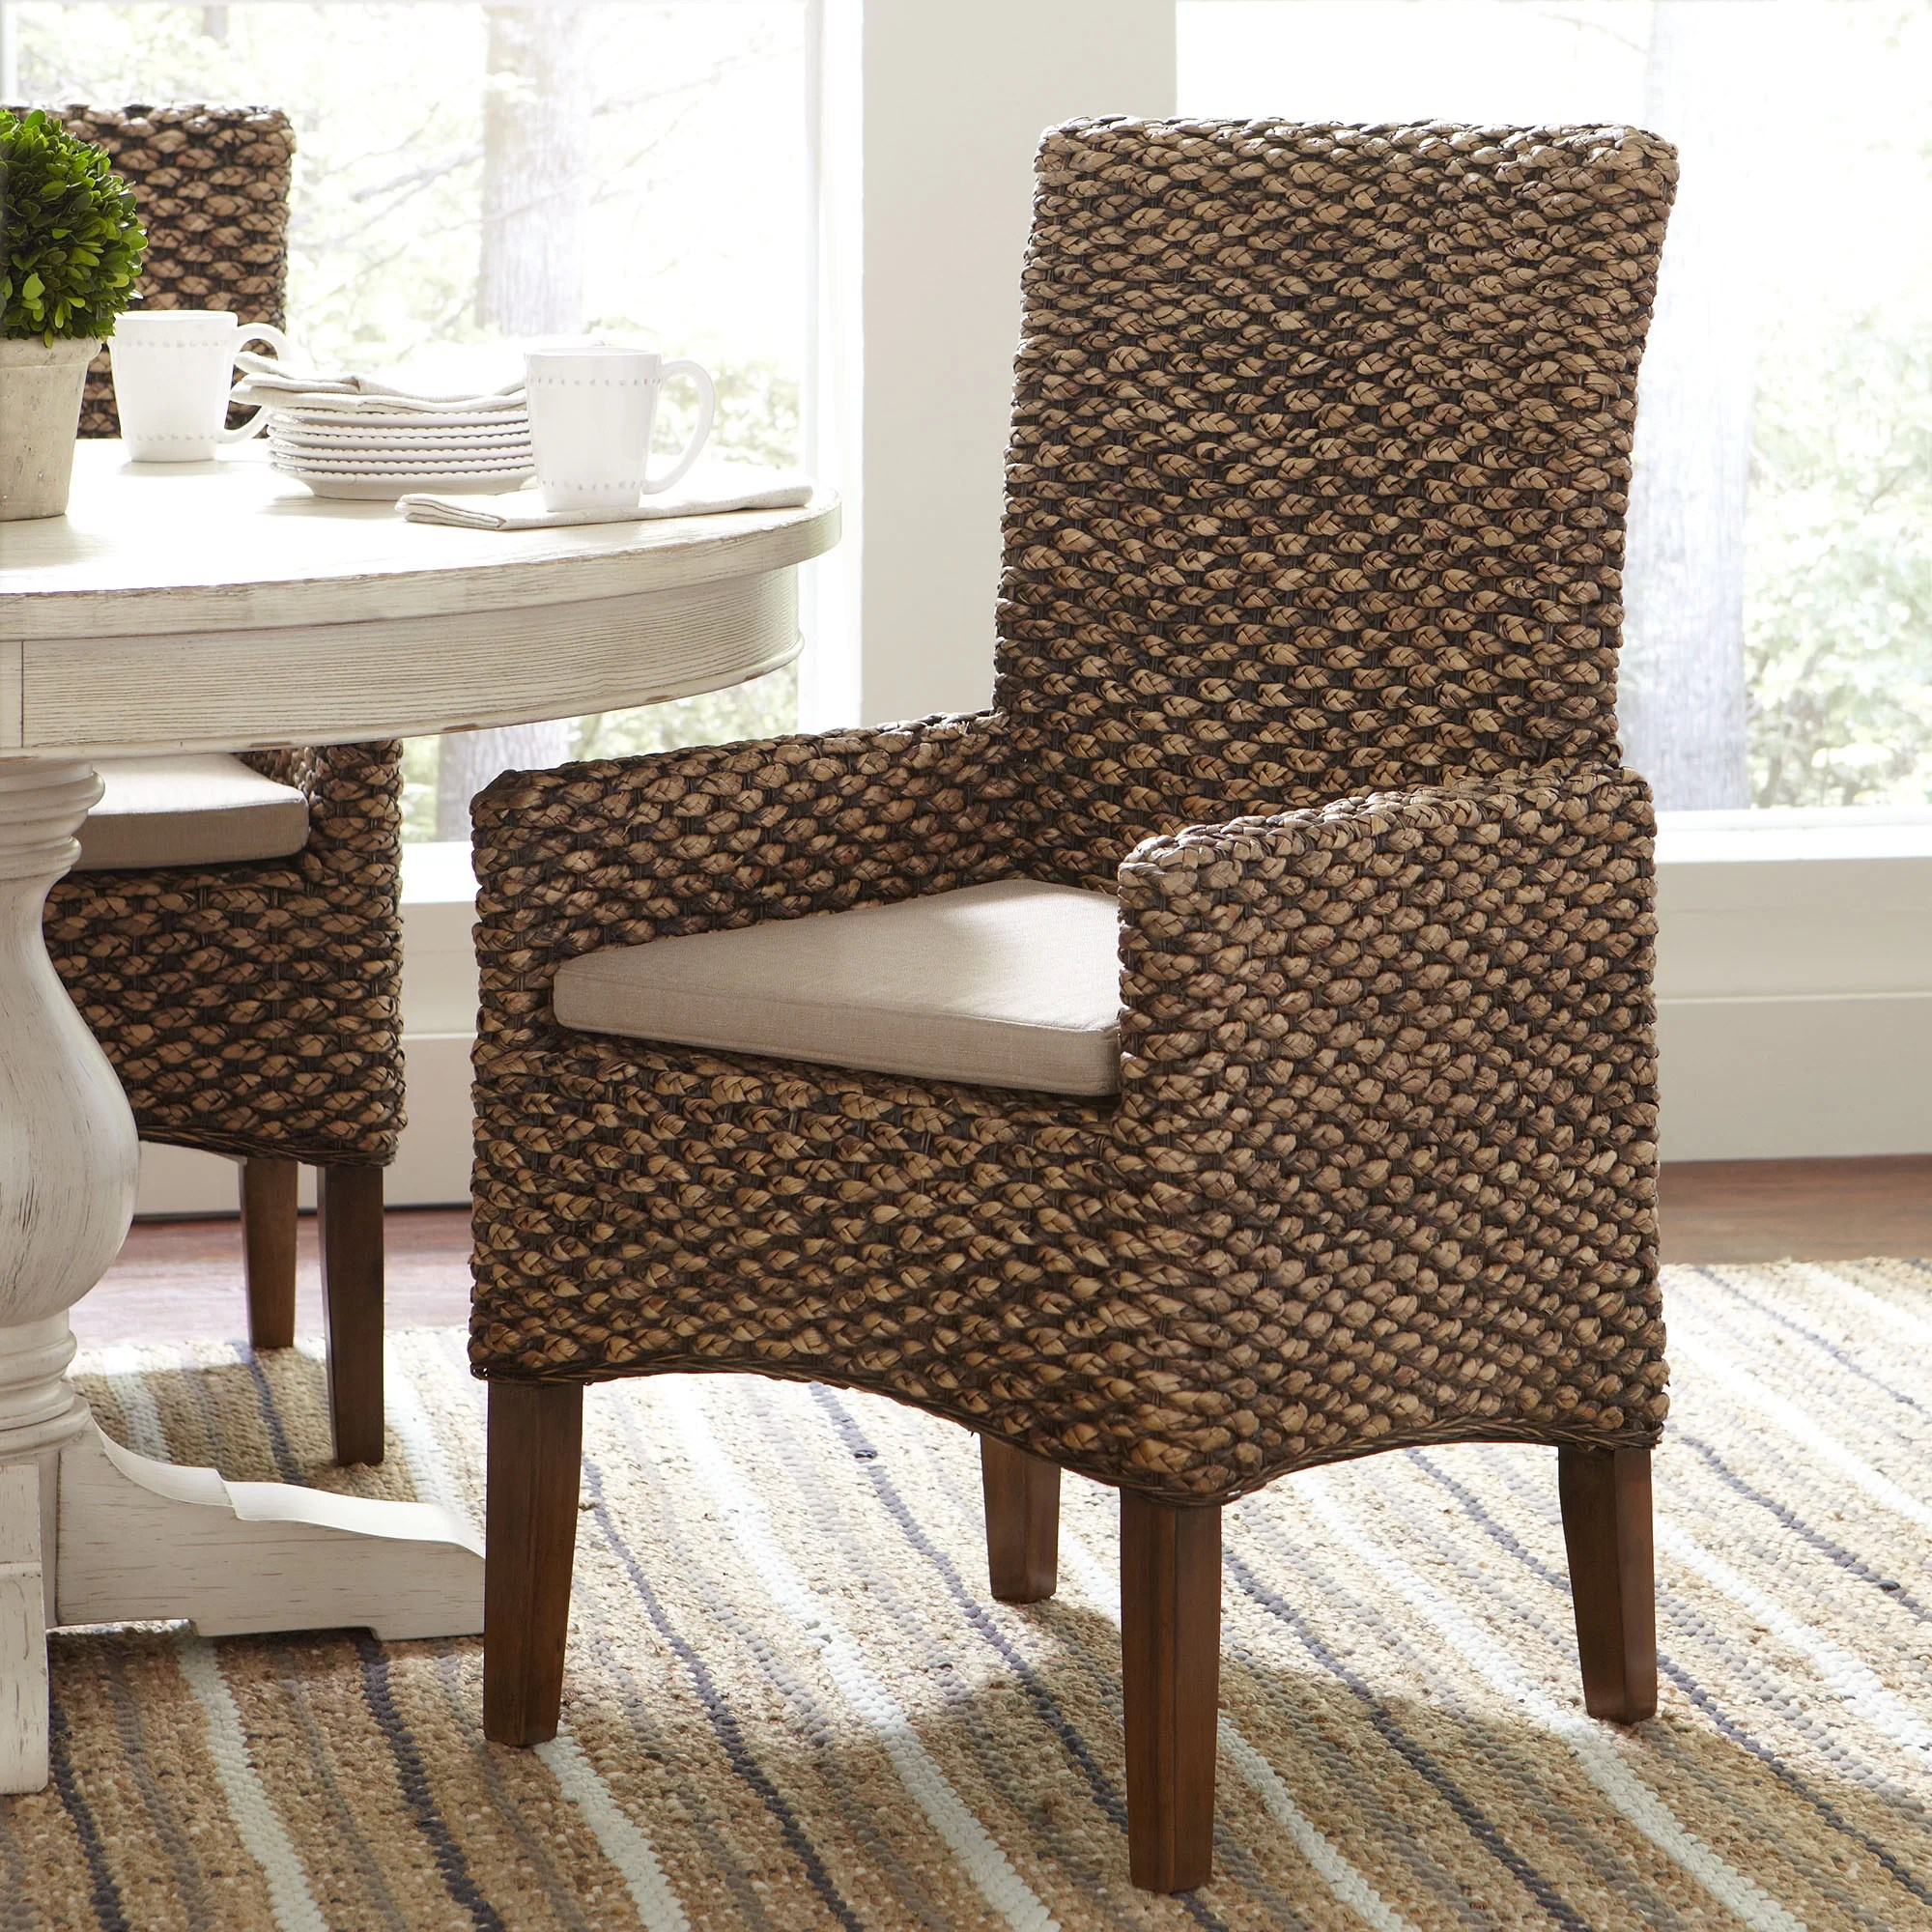 Arm Chairs Heliodoro Woven Seagrass Arm Chairs